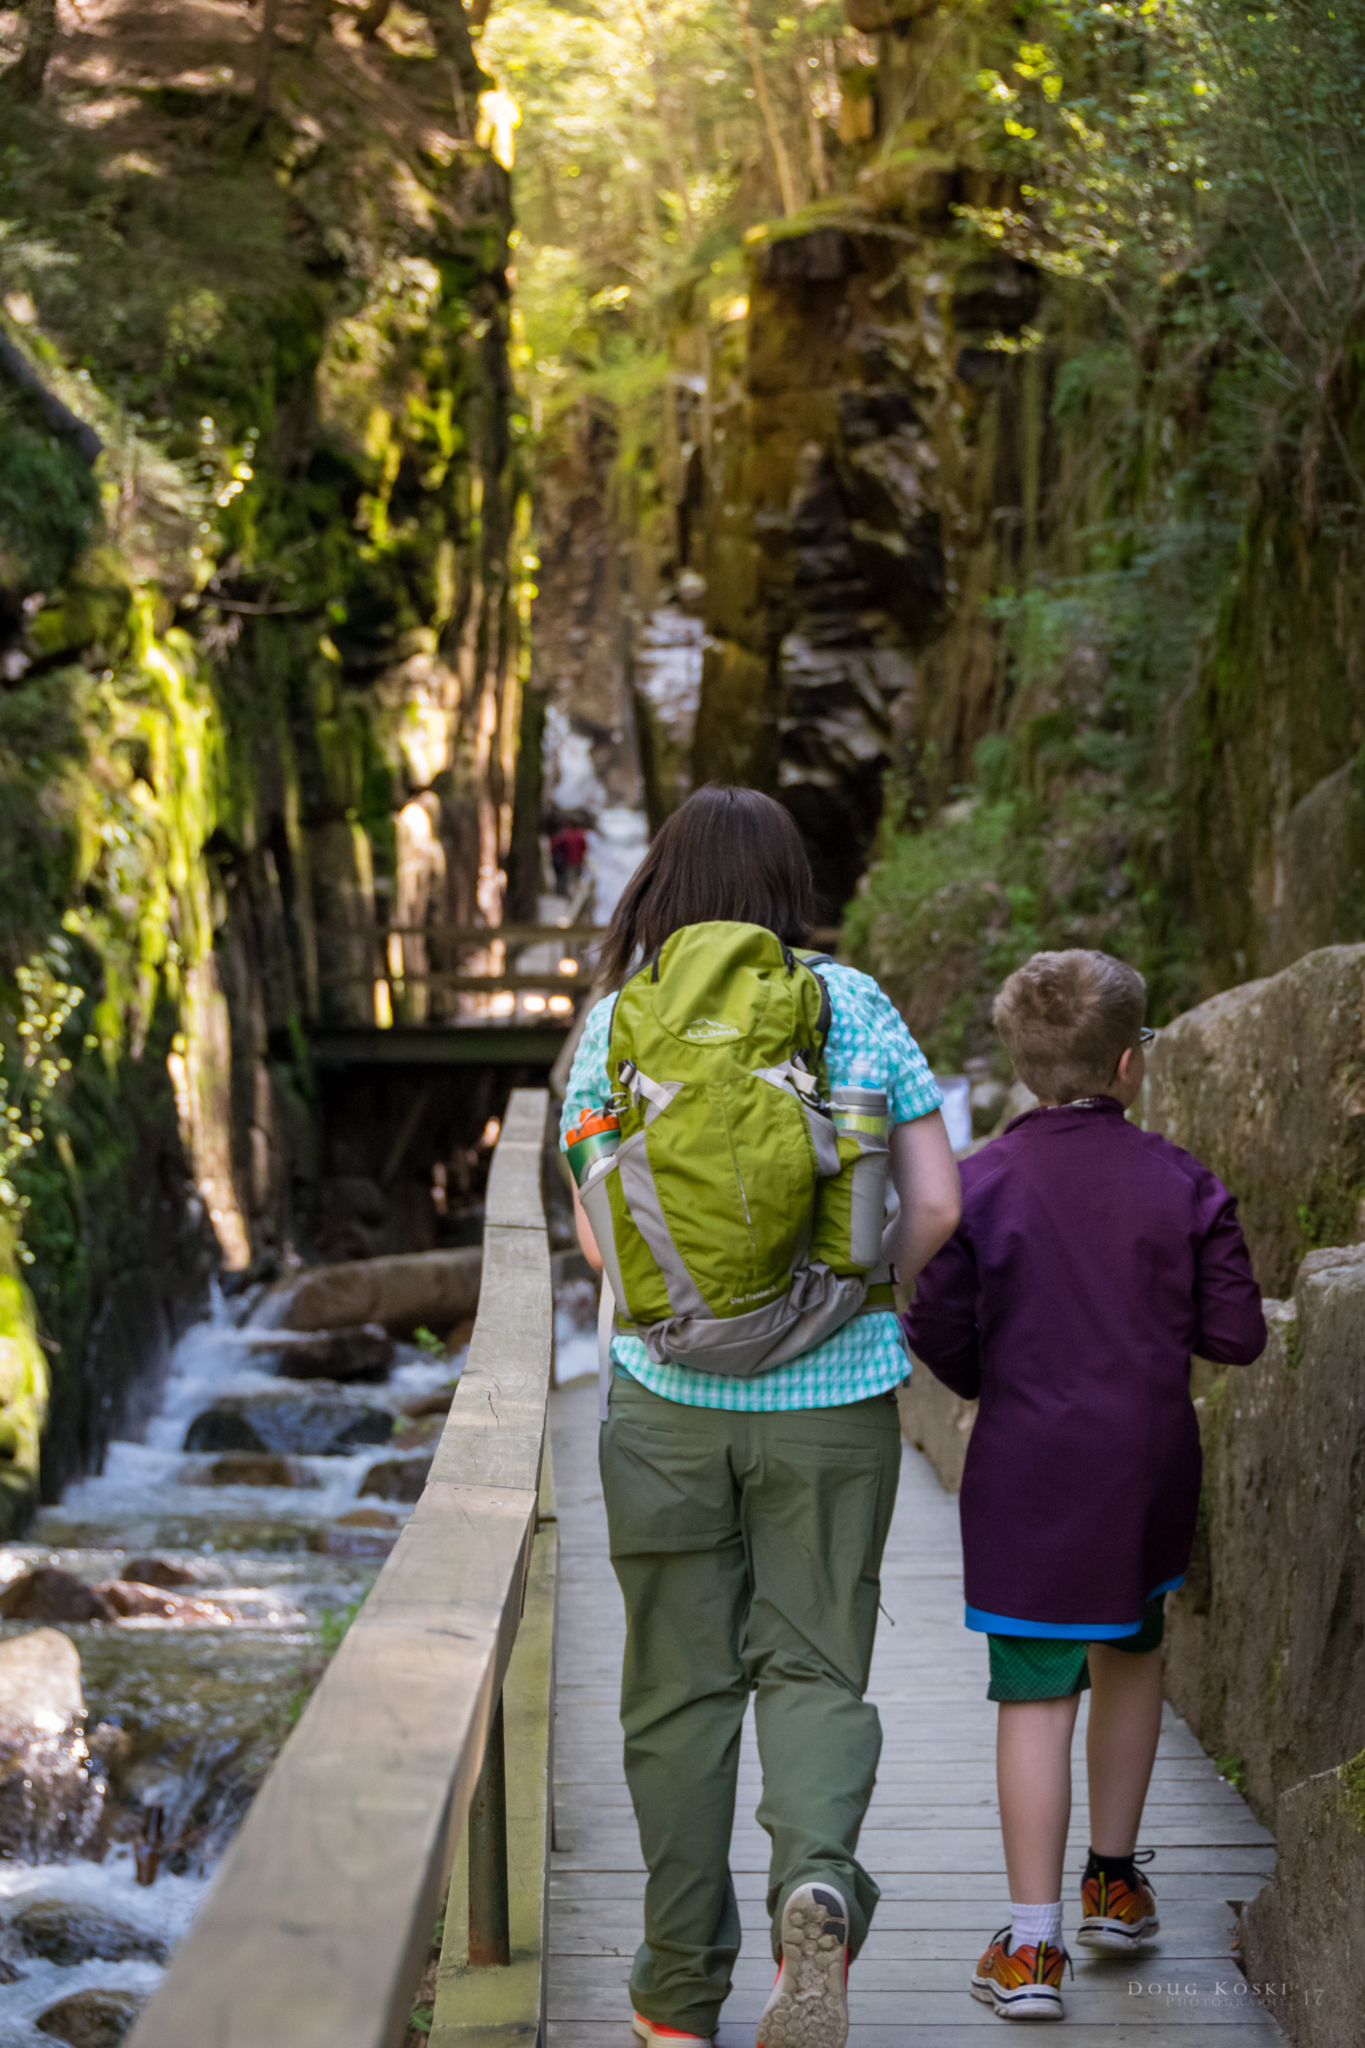 The Flume Gorge - We had made it to the entrance of the Gorge. We all took in the towering granite walls and the water rushing beneath us.